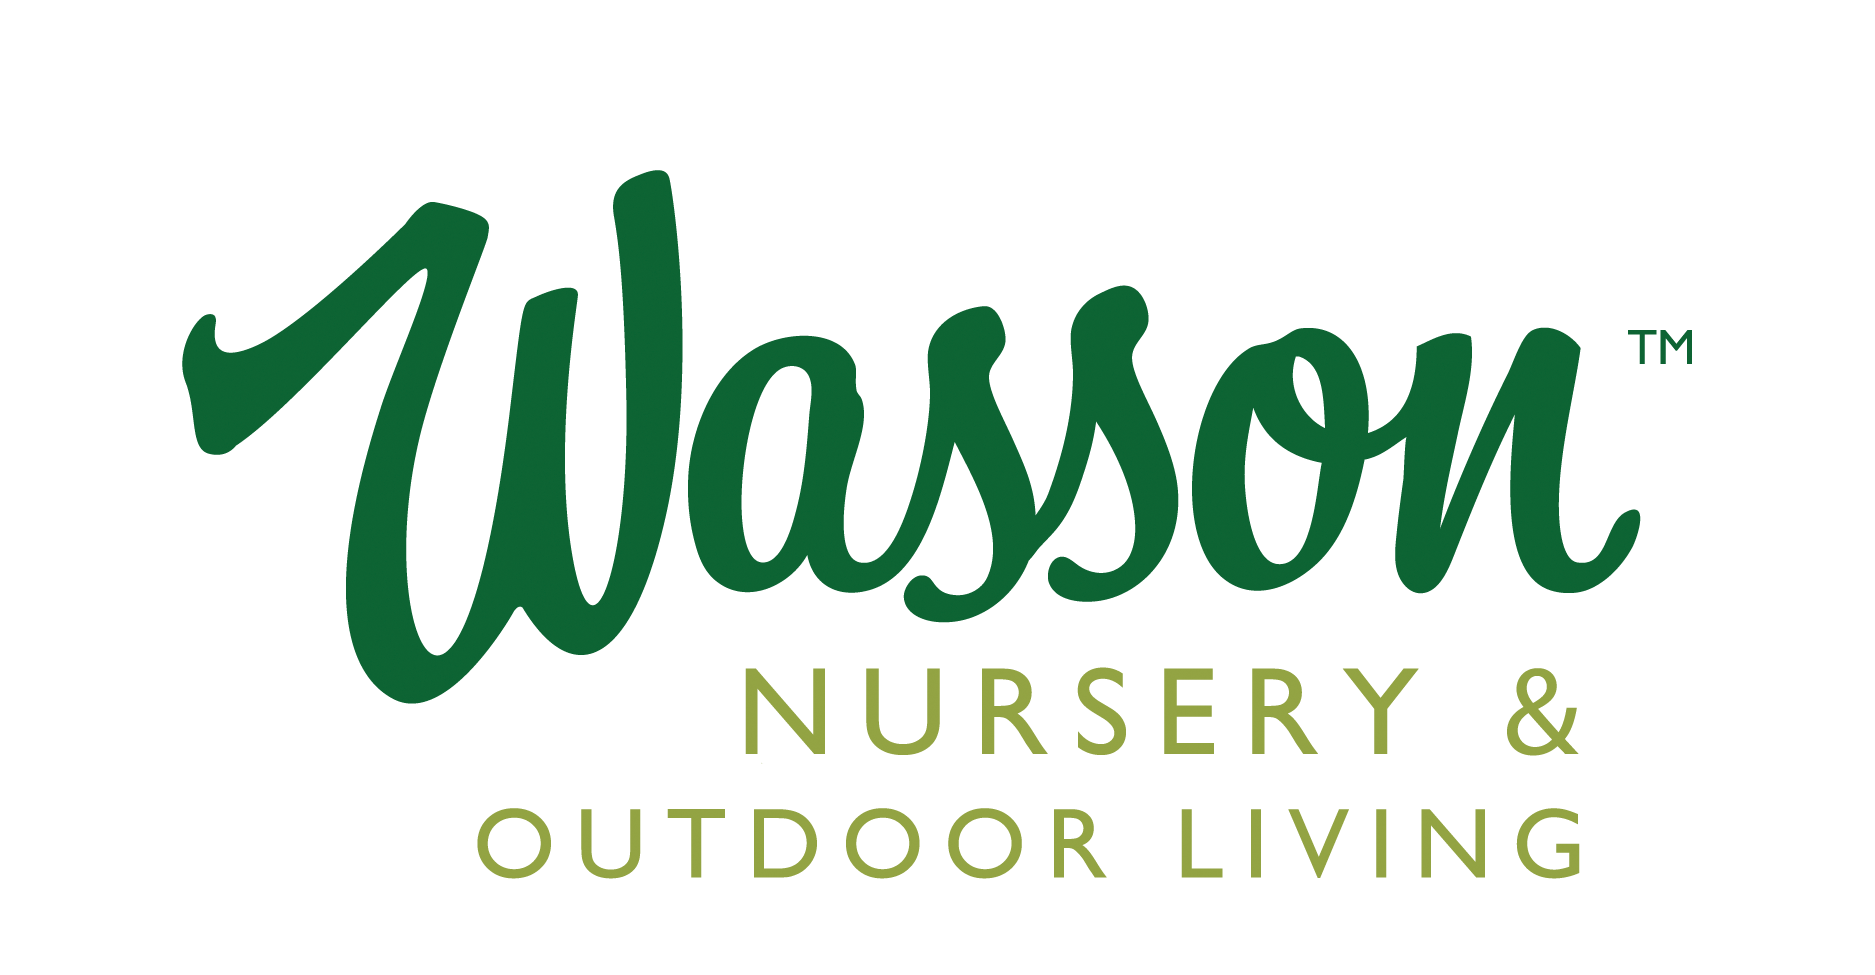 Wasson-color.png